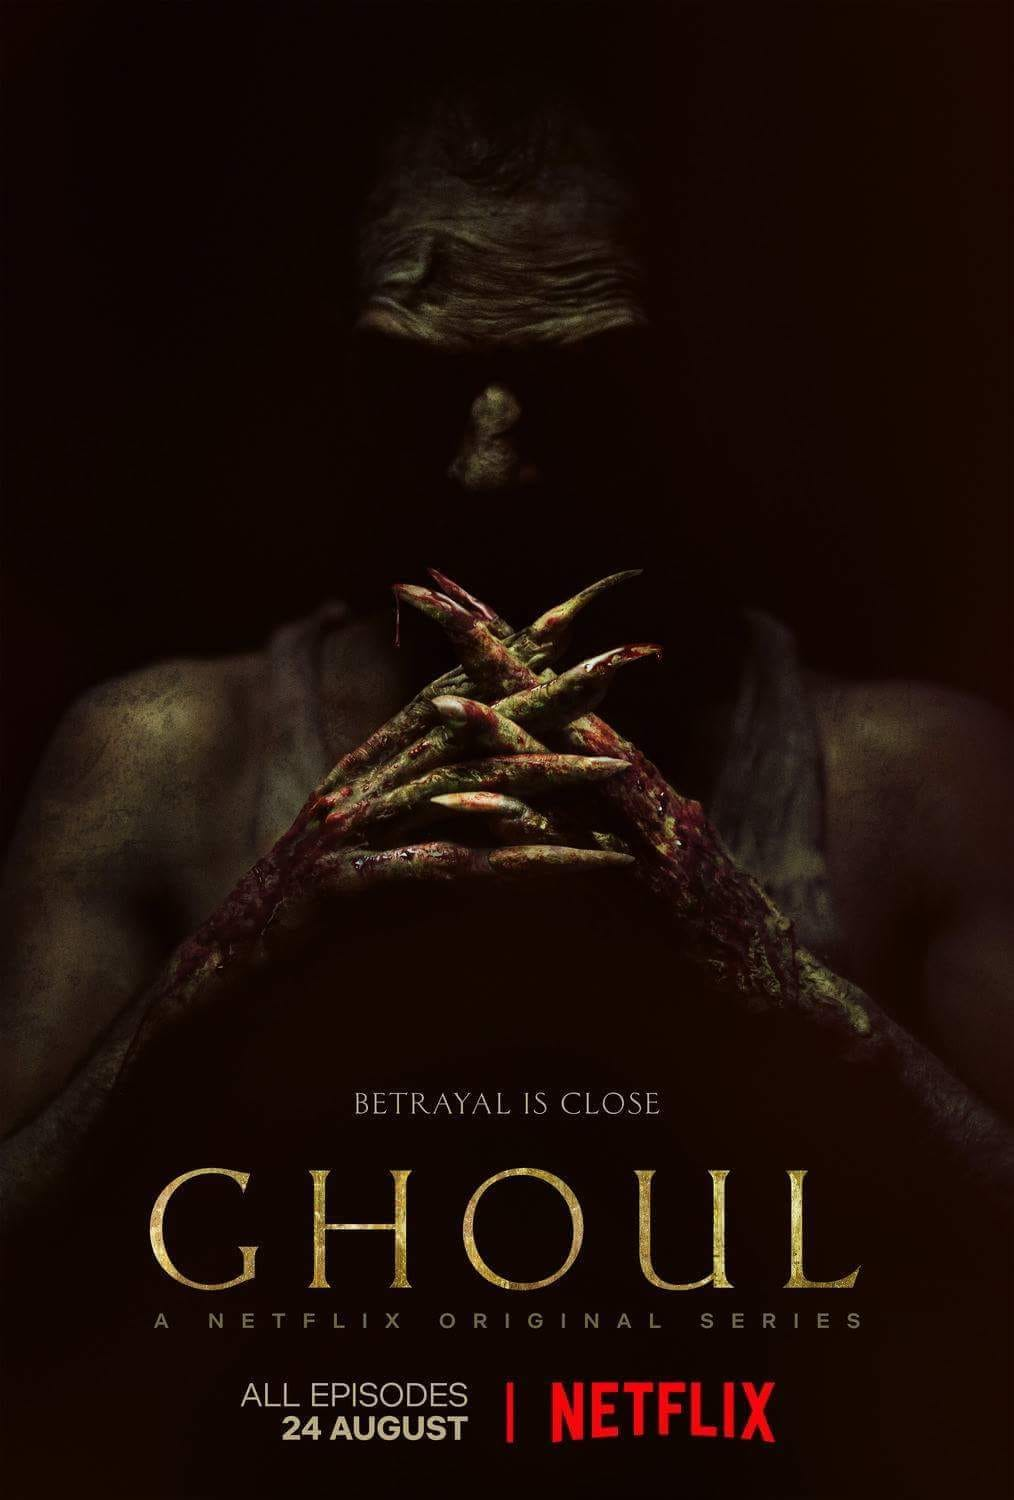 Ghoul-Netflix-MiniSeries-Review-2018